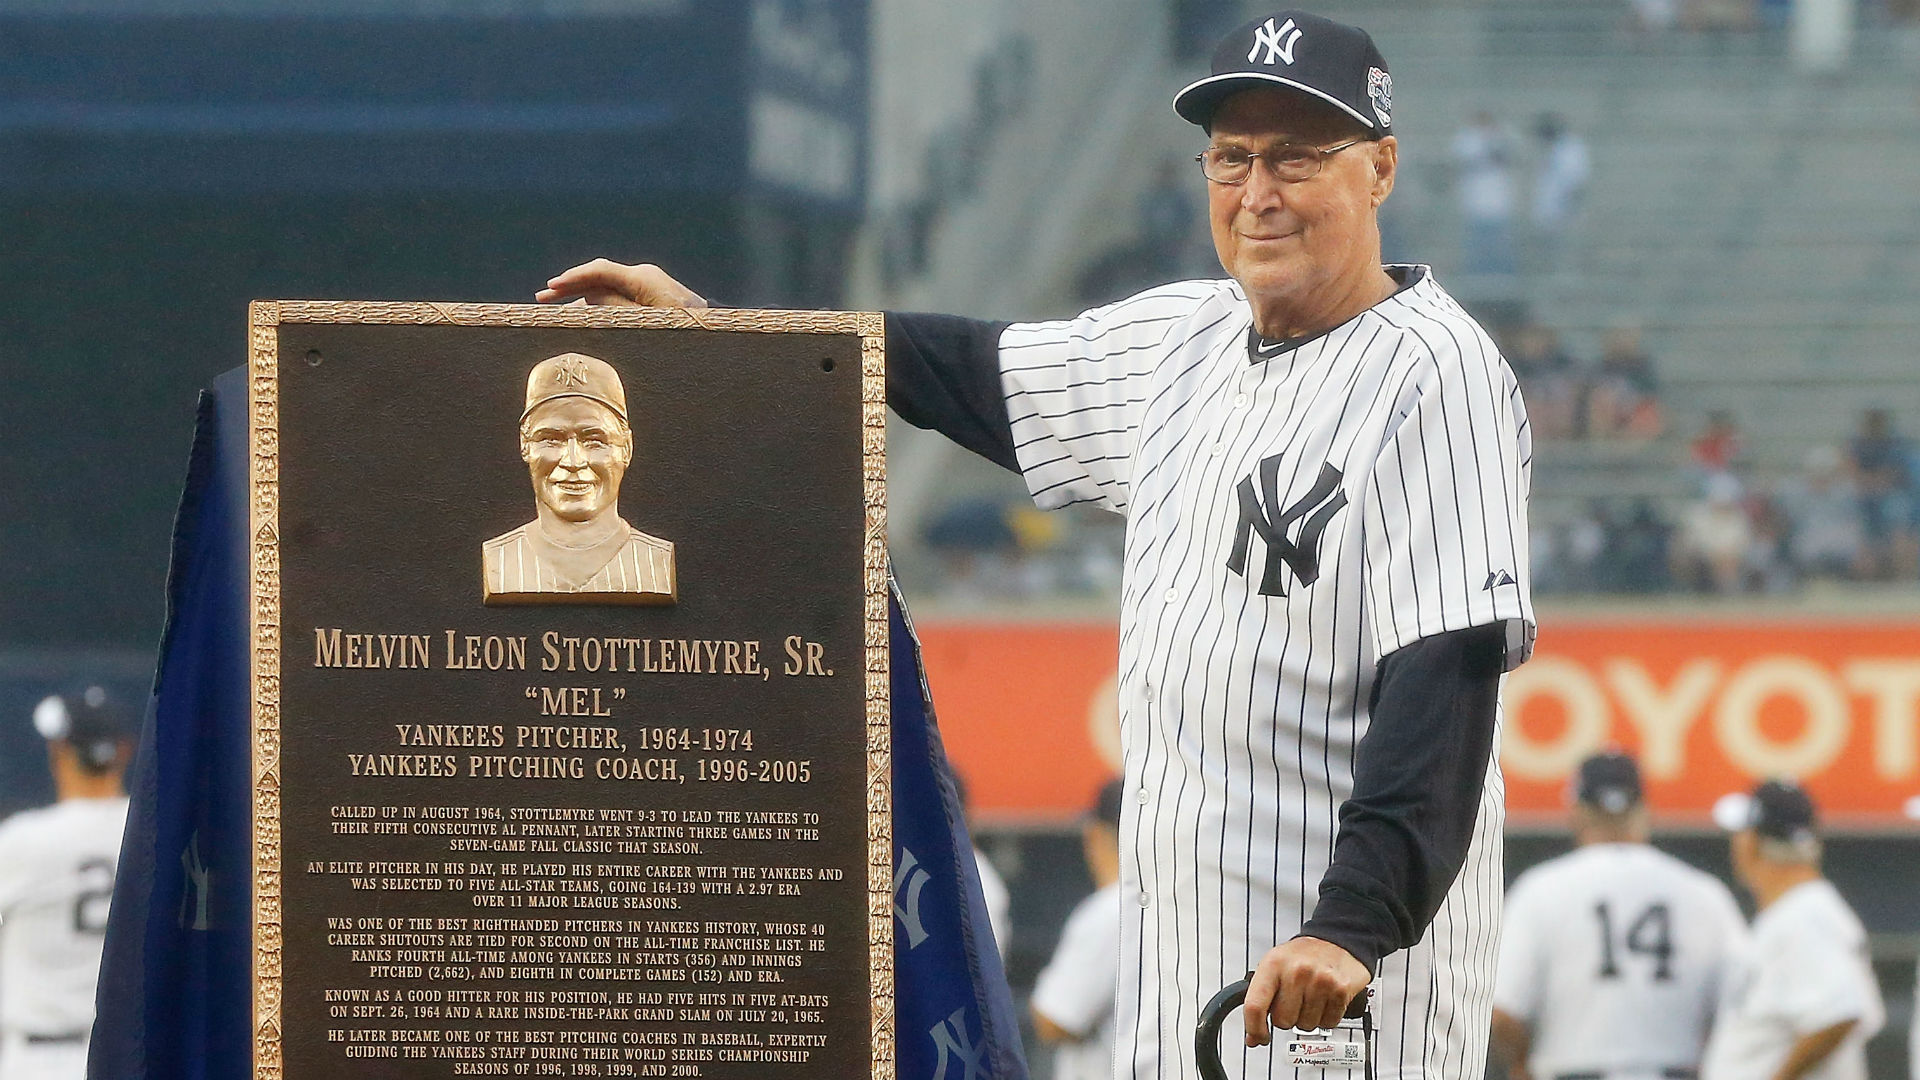 Former ace, longtime pitching coach Mel Stottlemyre dies at 77